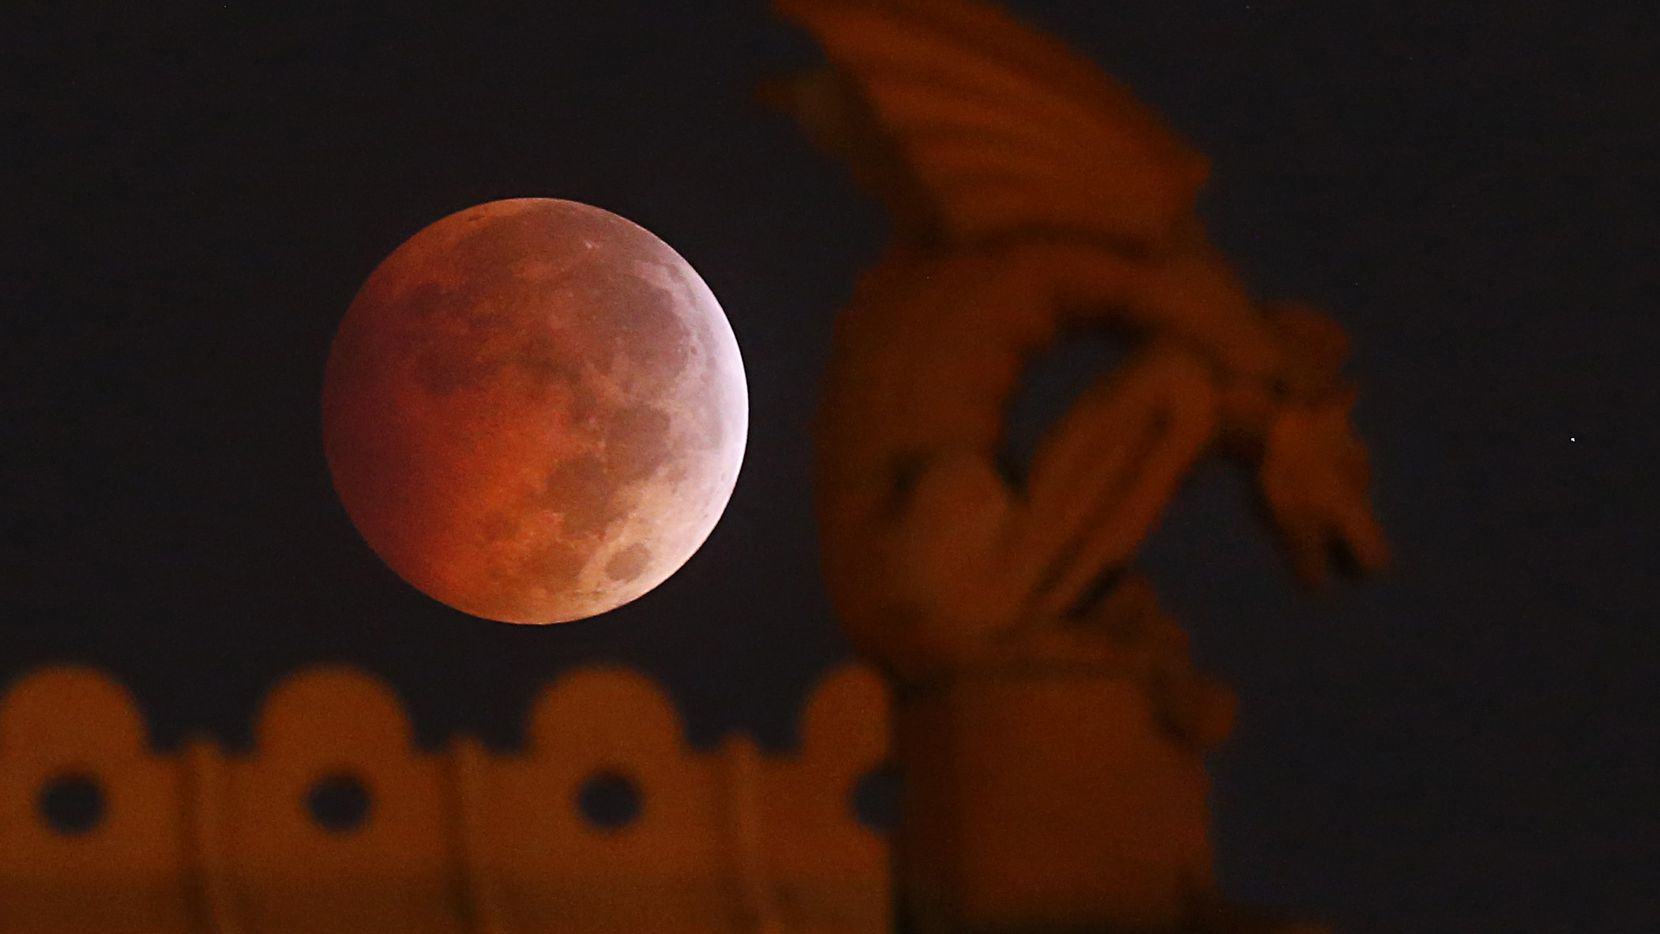 A blood moon appears behind a gargoyle atop the old red Dallas County Courthouse during a lunar eclipse in Dallas in 2014.